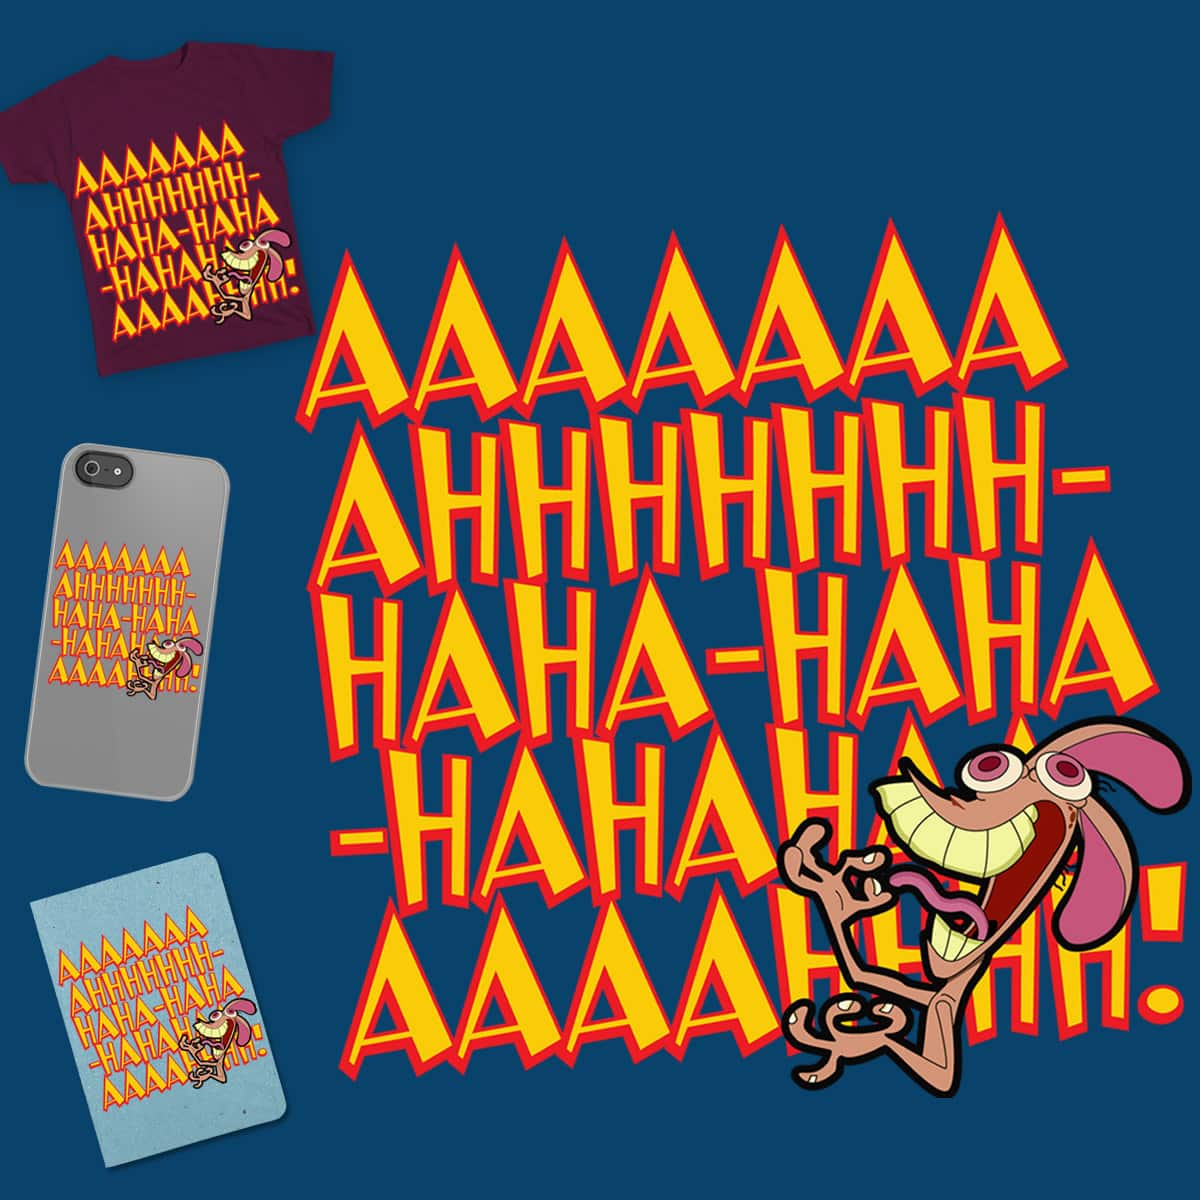 Ren's Laugh by Kixiely on Threadless